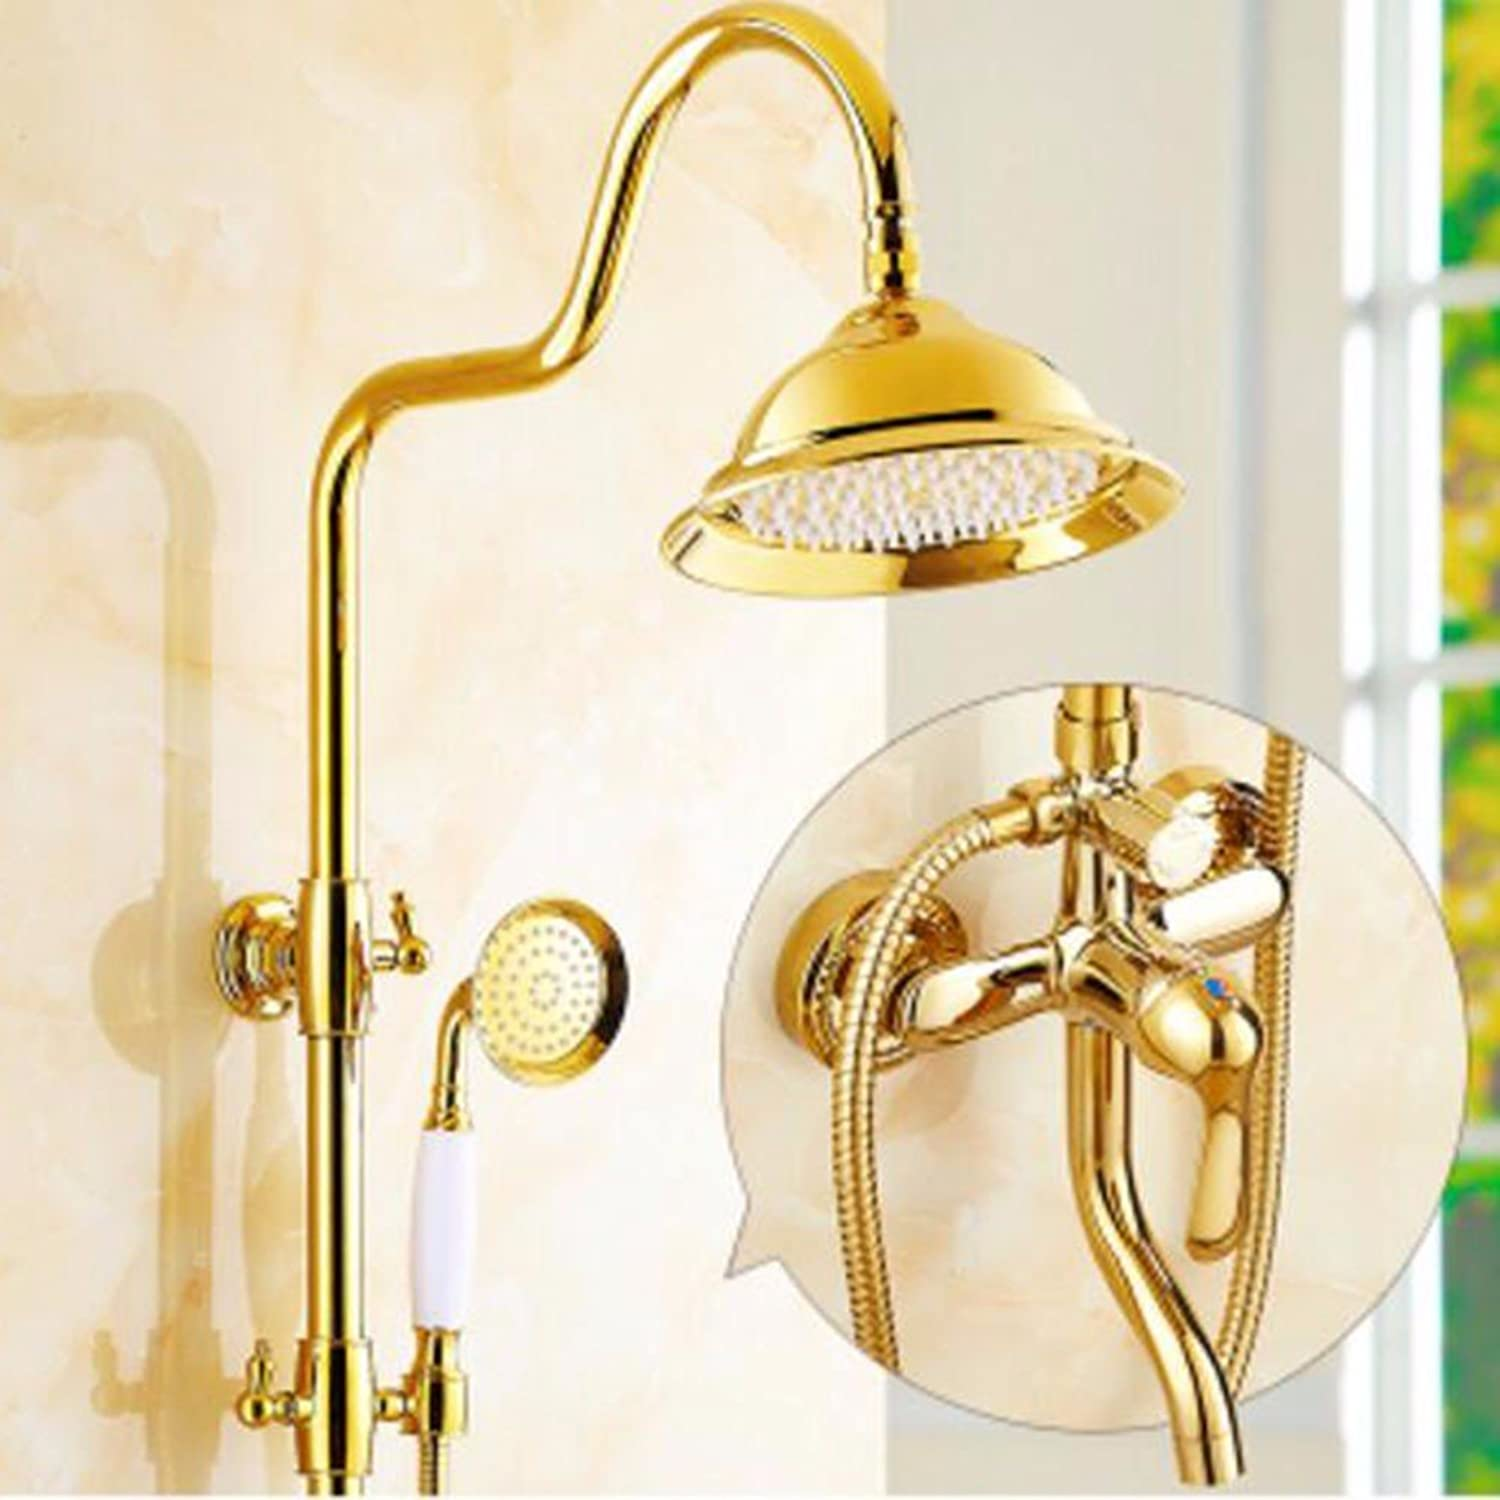 Shower set European Style Natural Jade gold Shower Set All Copper Antique Shower Hot And Cold American Style gold-Plated Shower Can Be Lifted,A